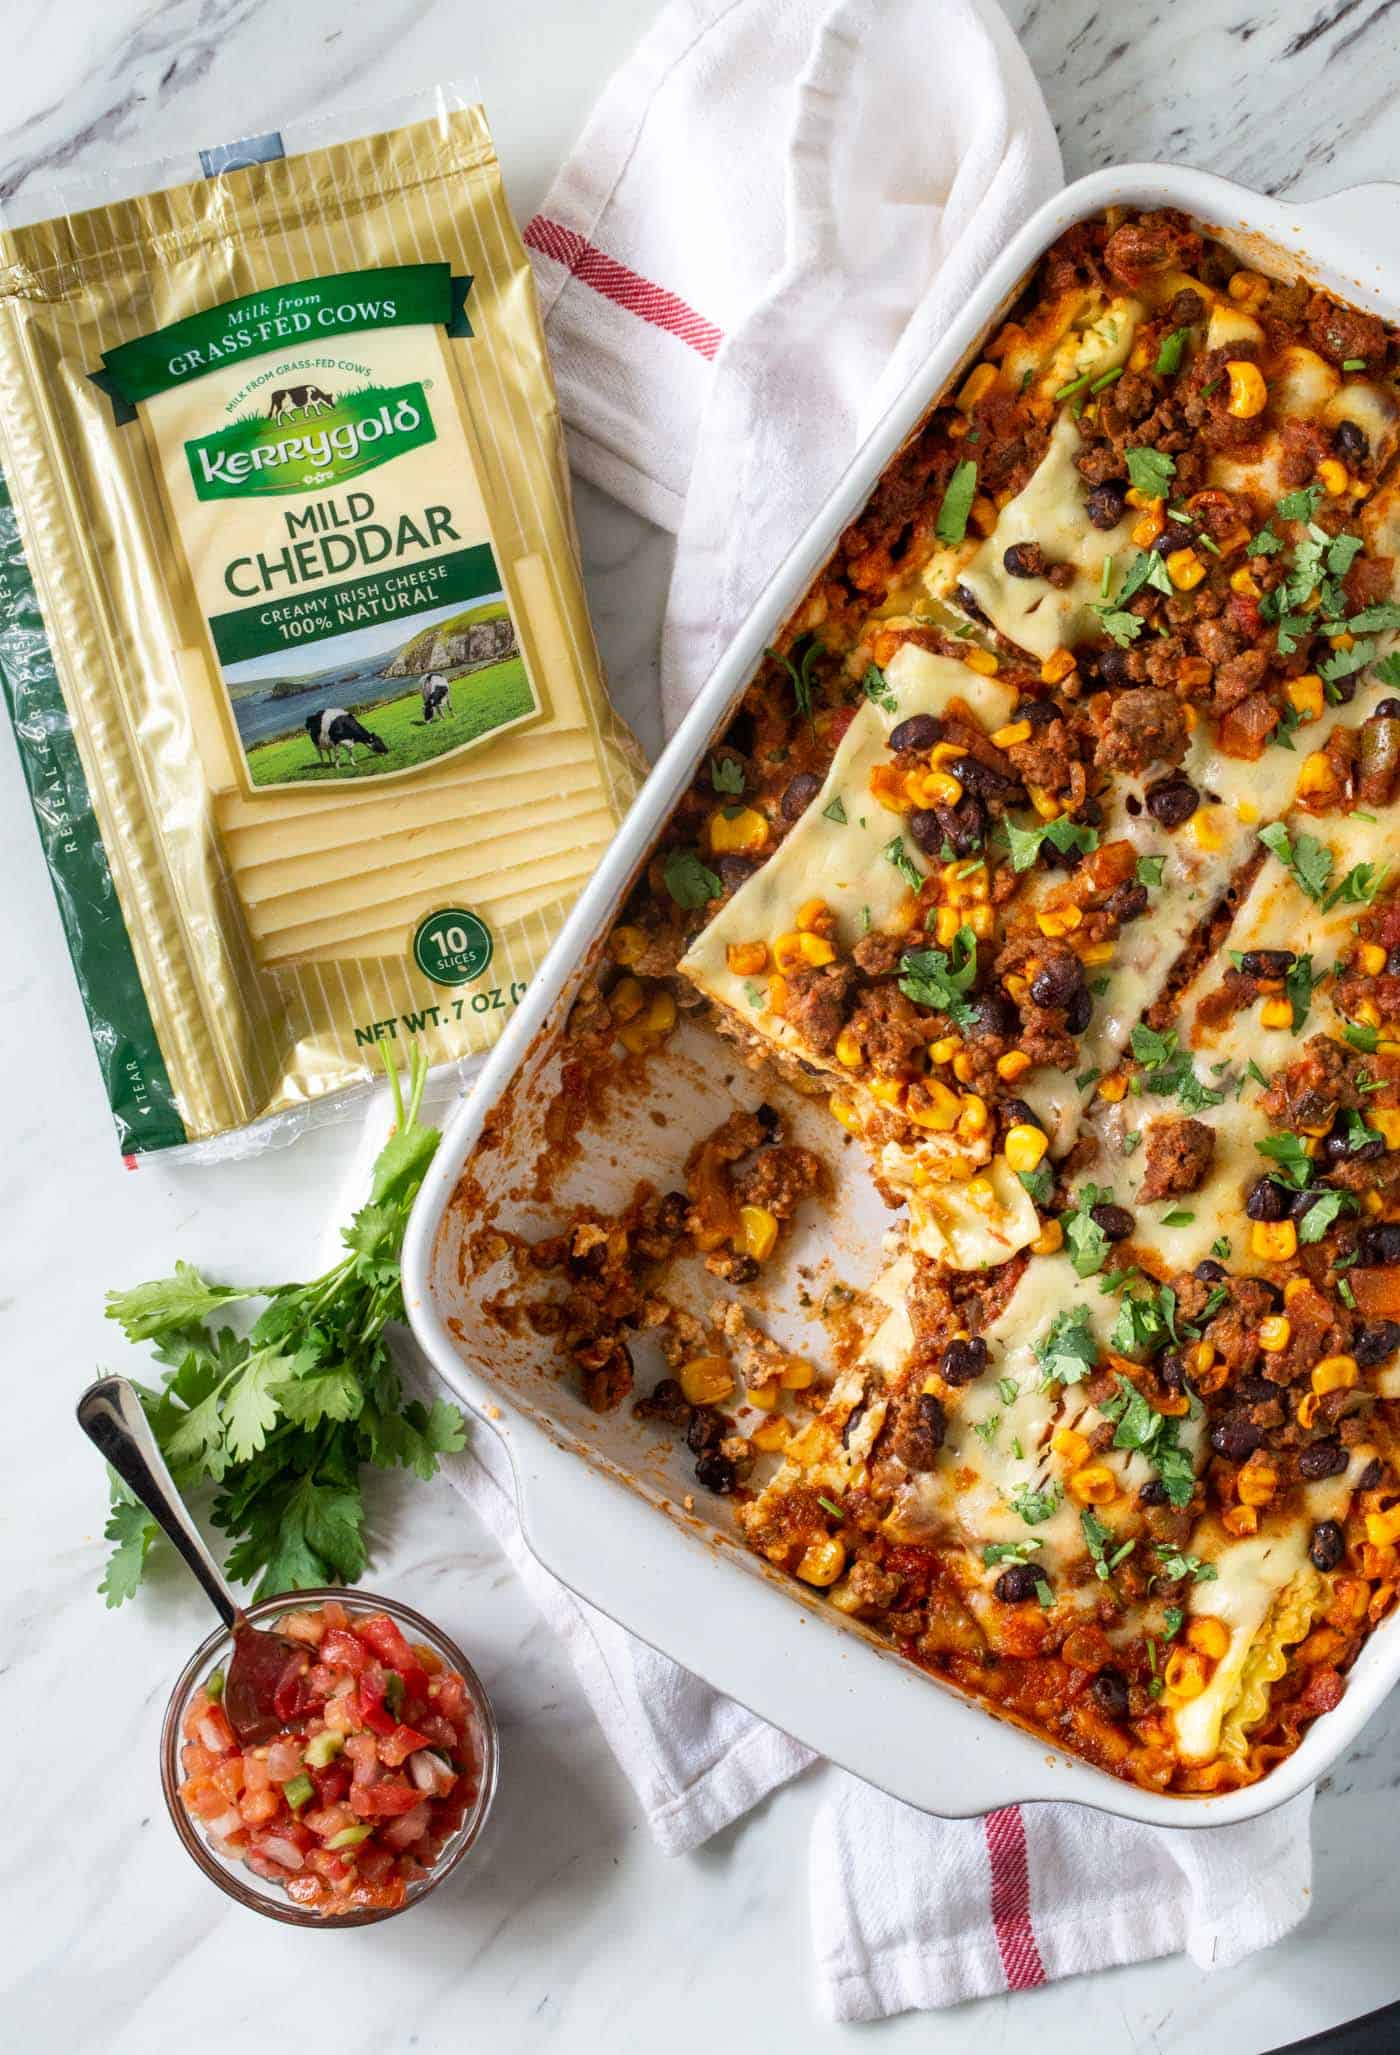 White casserole dish filled with Mexican Lasagna and Kerrygold Mild Cheddar Cheese slices